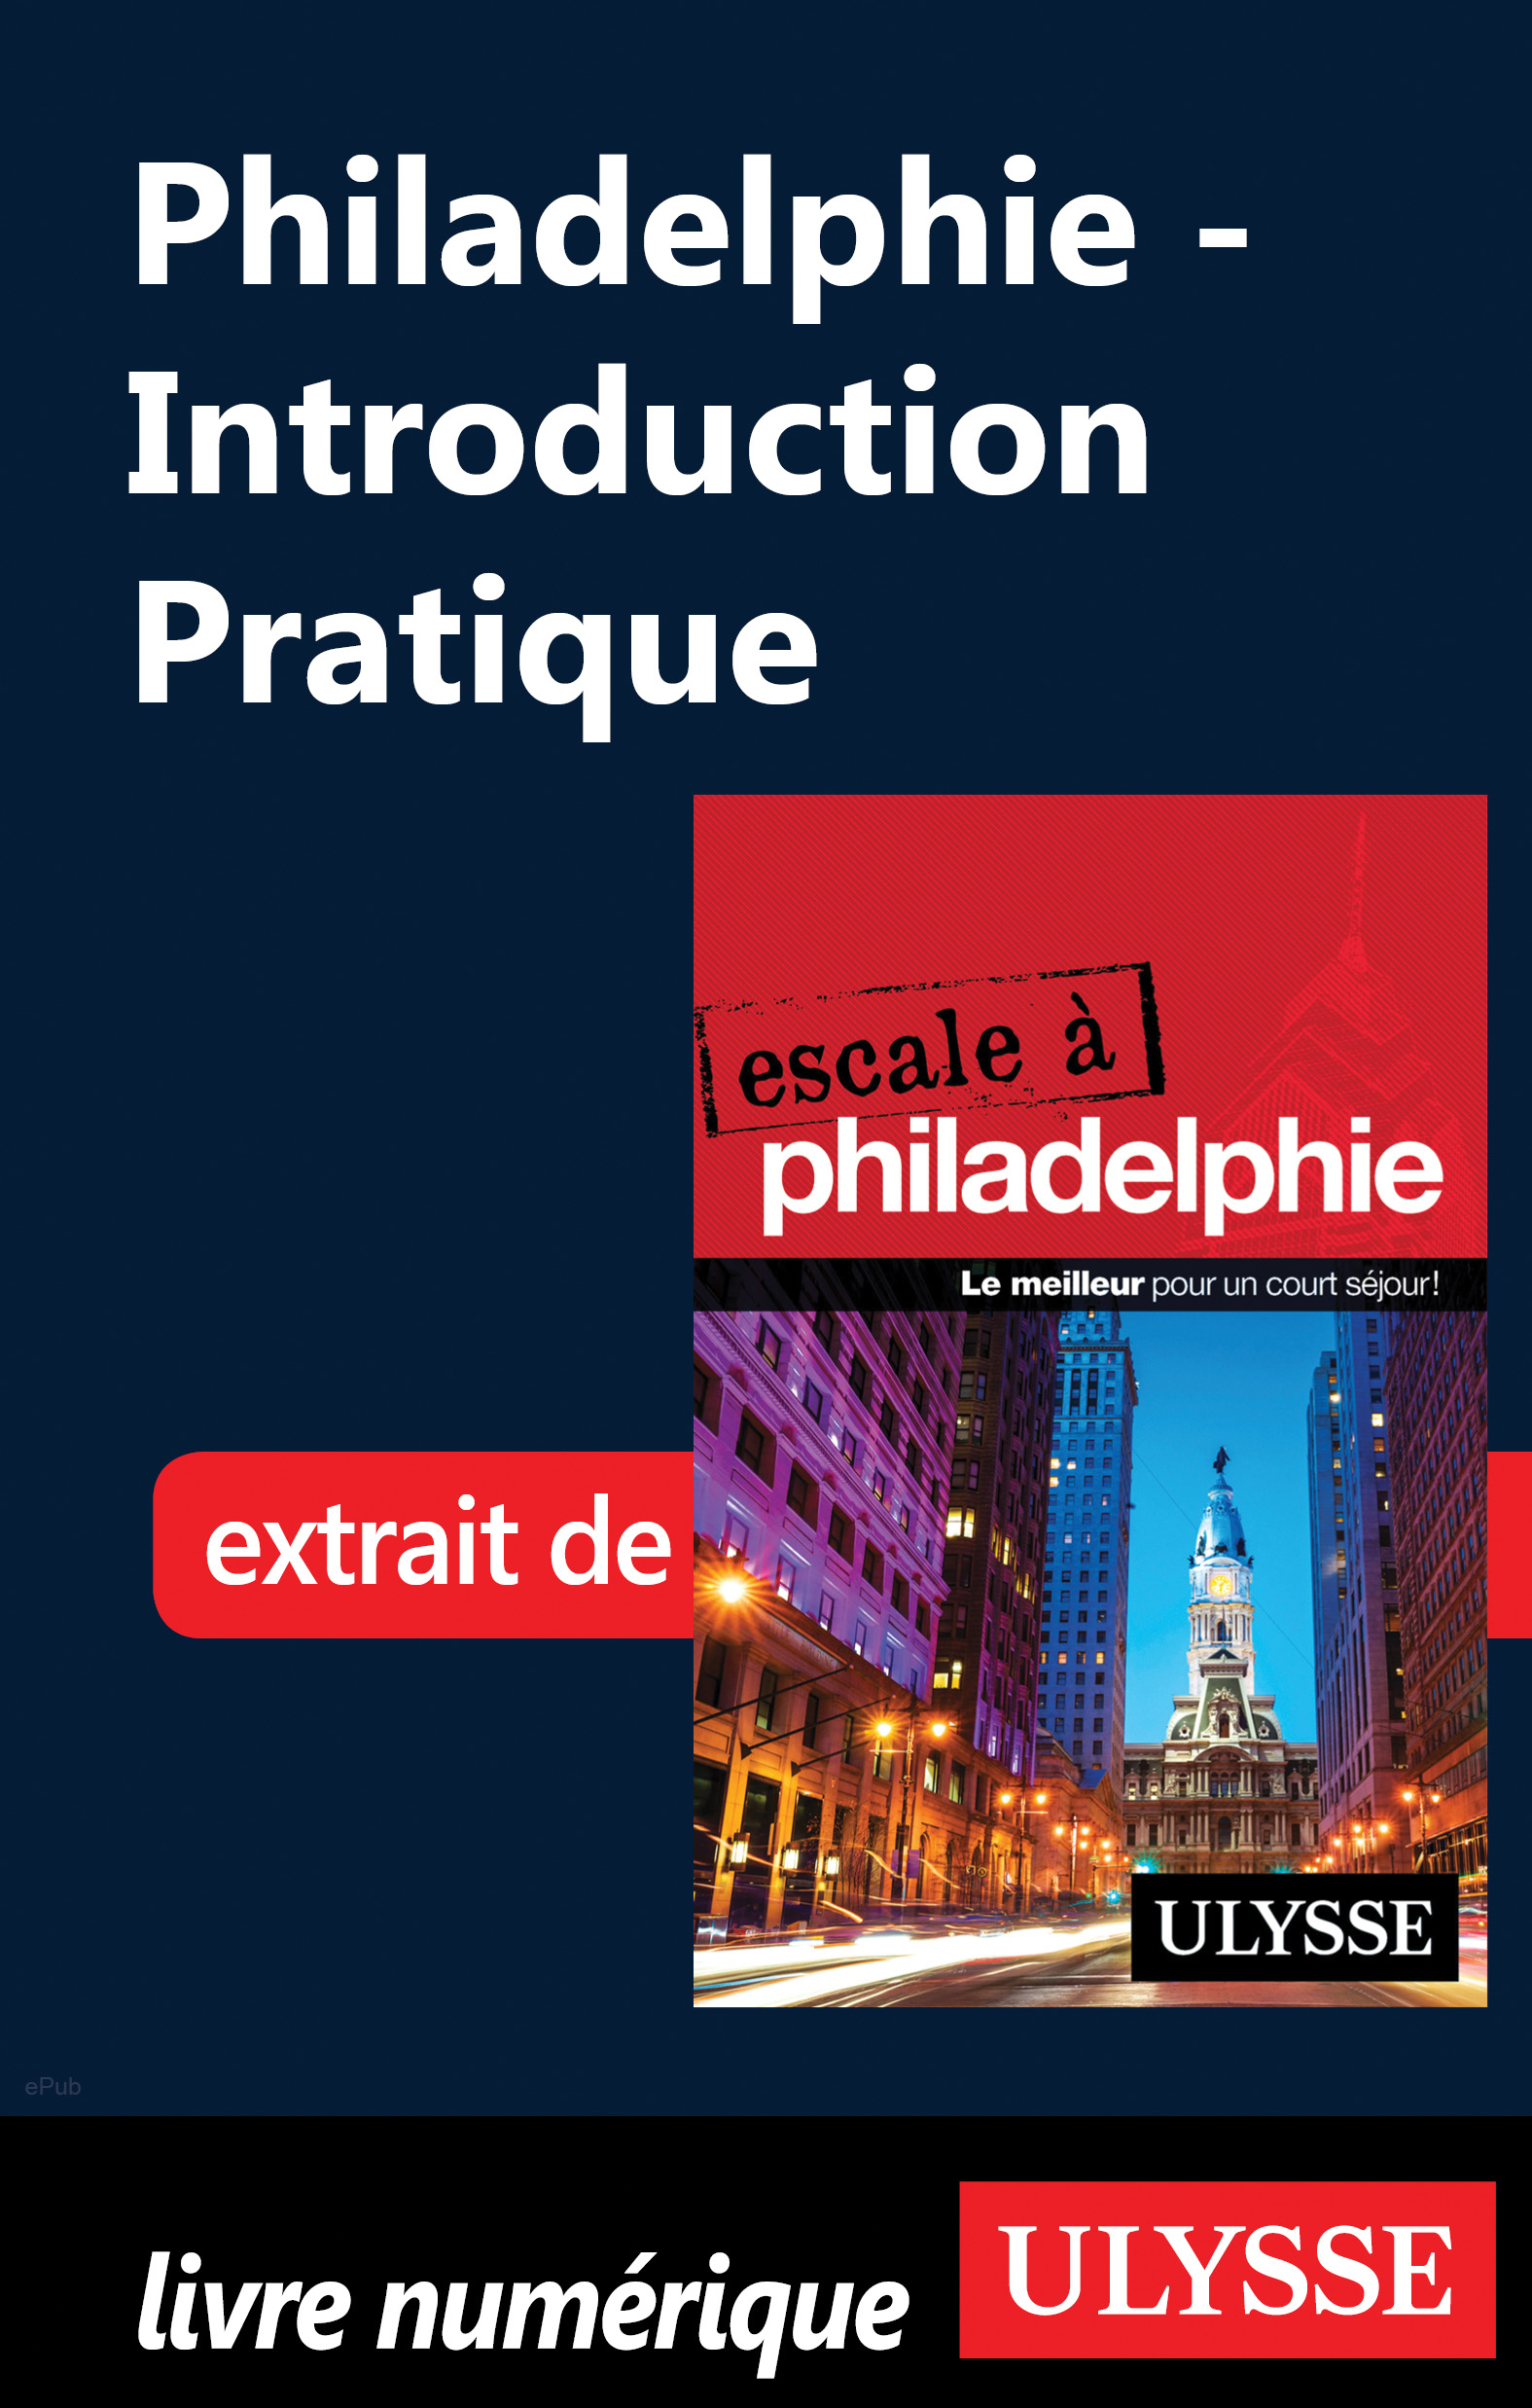 Vignette du livre Philadelphie - Introduction Pratique